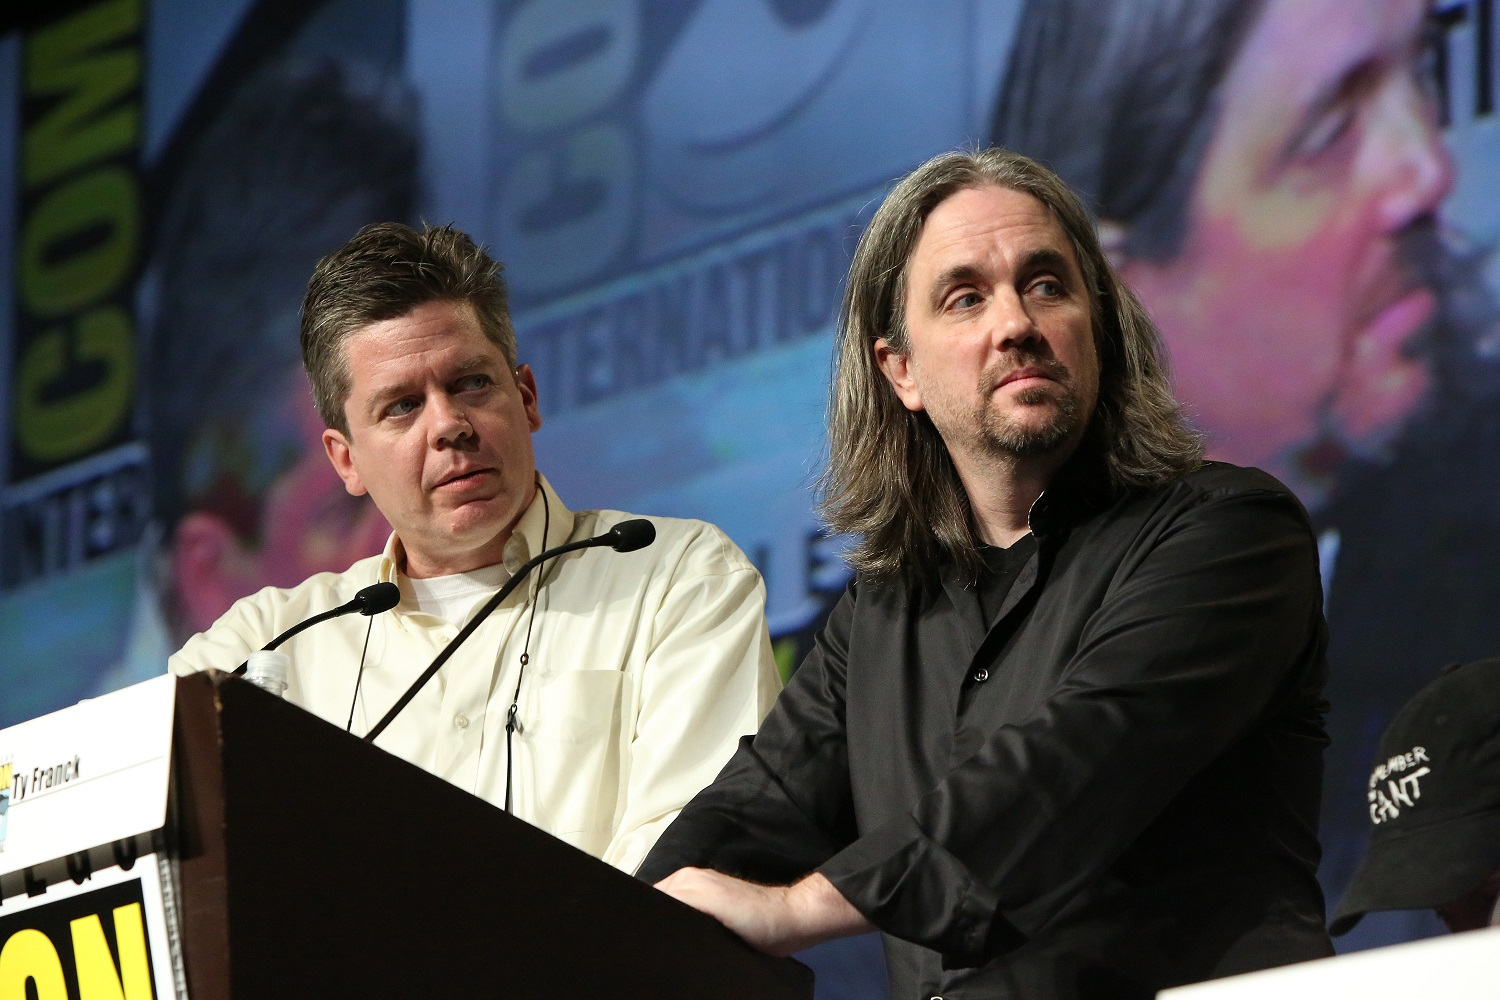 Daniel Abraham and Ty Frank, co-authors of The Expanse